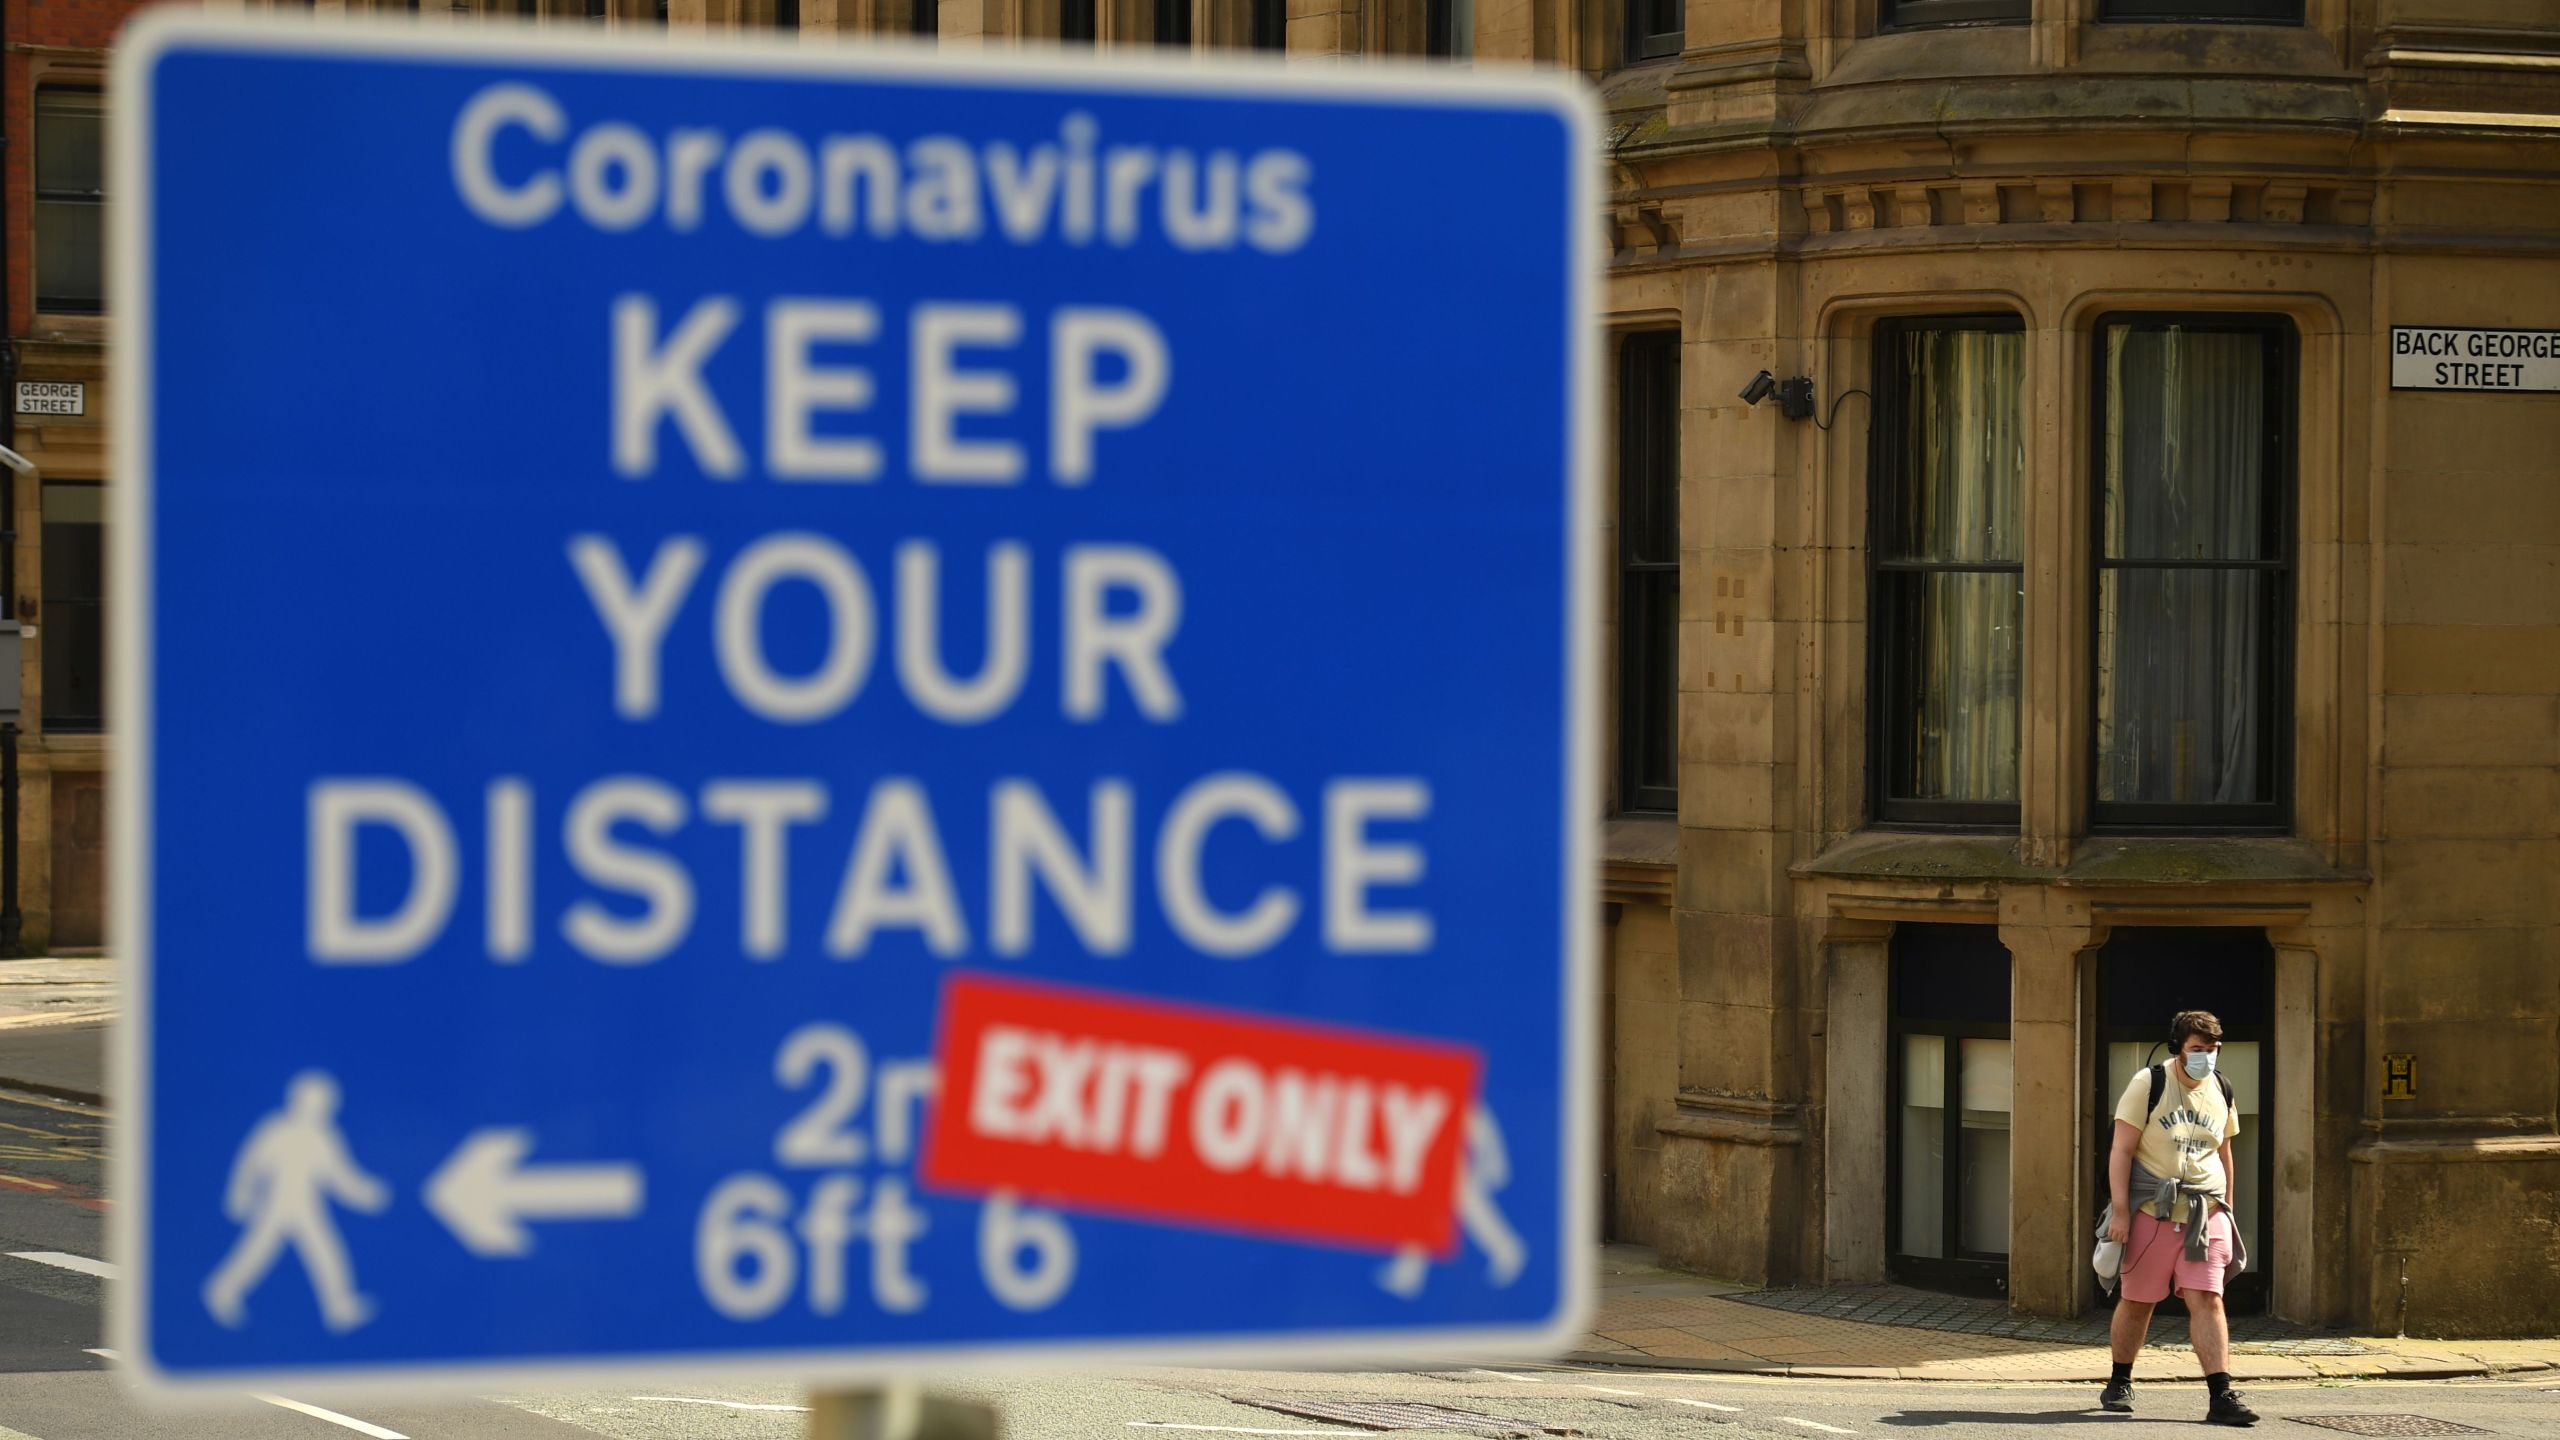 A sign requesting pedestrians to follow the governments social distancing guidelines is on view in the centre of Manchester, northwest England, on July 31, 2020. (Oli SCARFF / AFP) (Photo by OLI SCARFF/AFP via Getty Images)